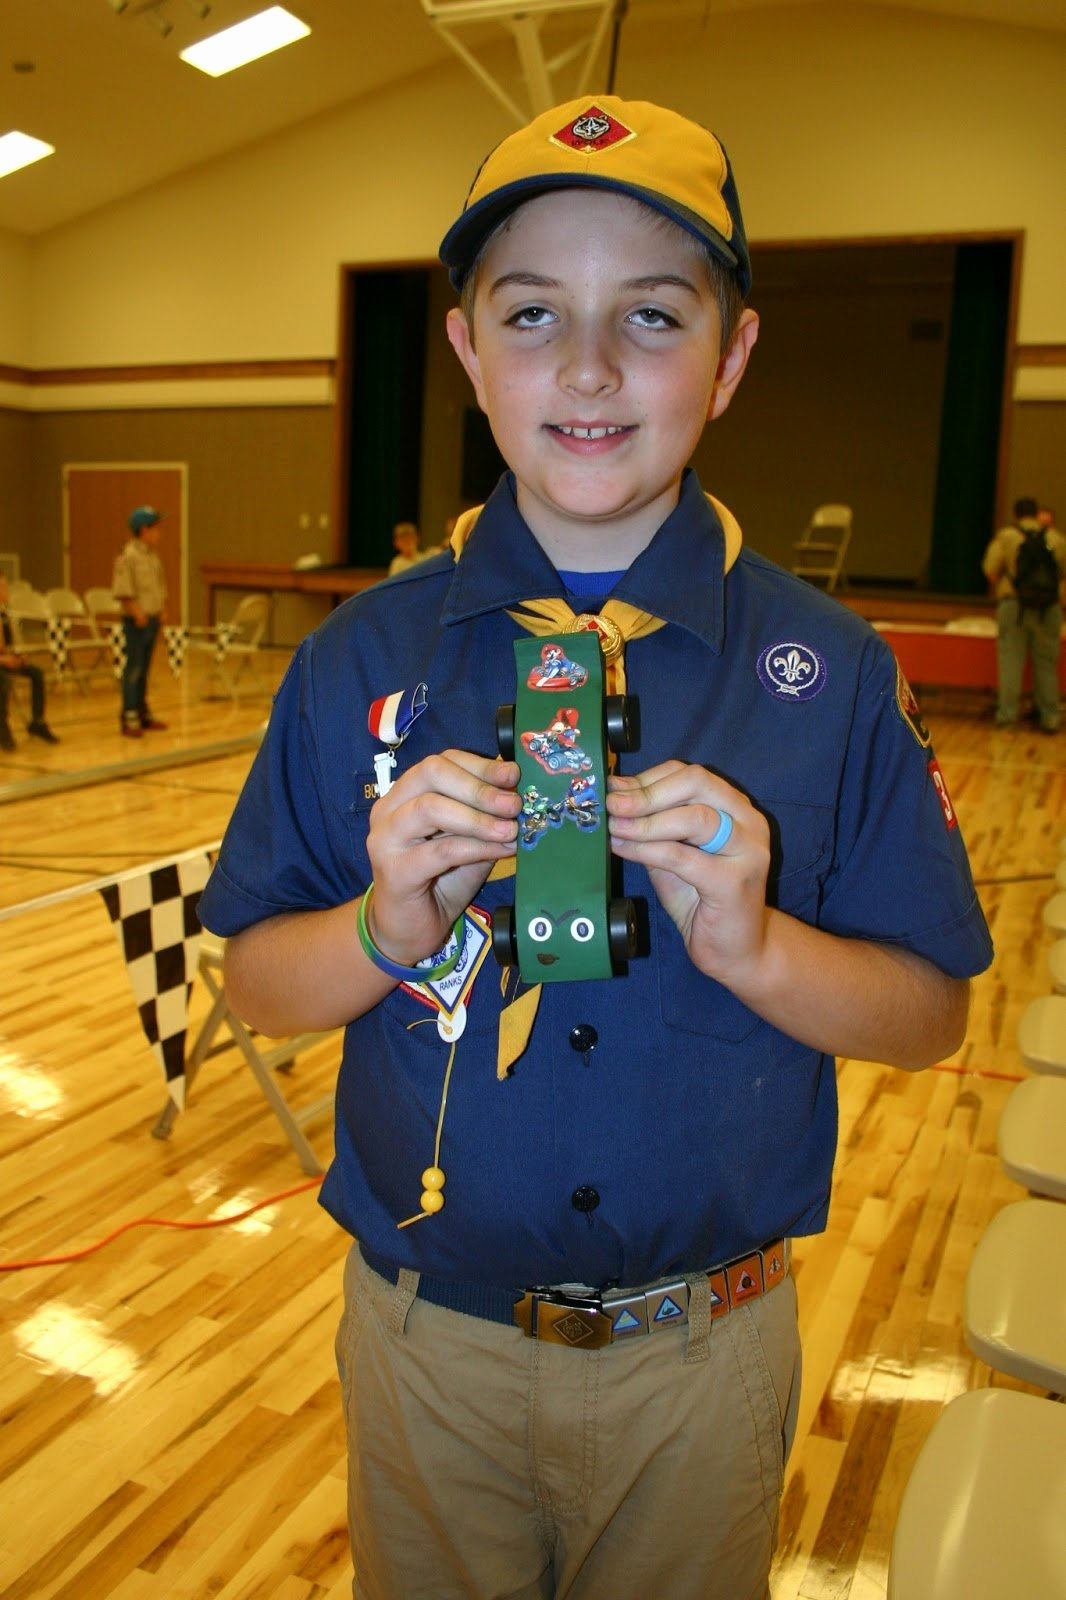 Mario Pinewood Derby Car Awesome Robinson Family Pinewood Derby